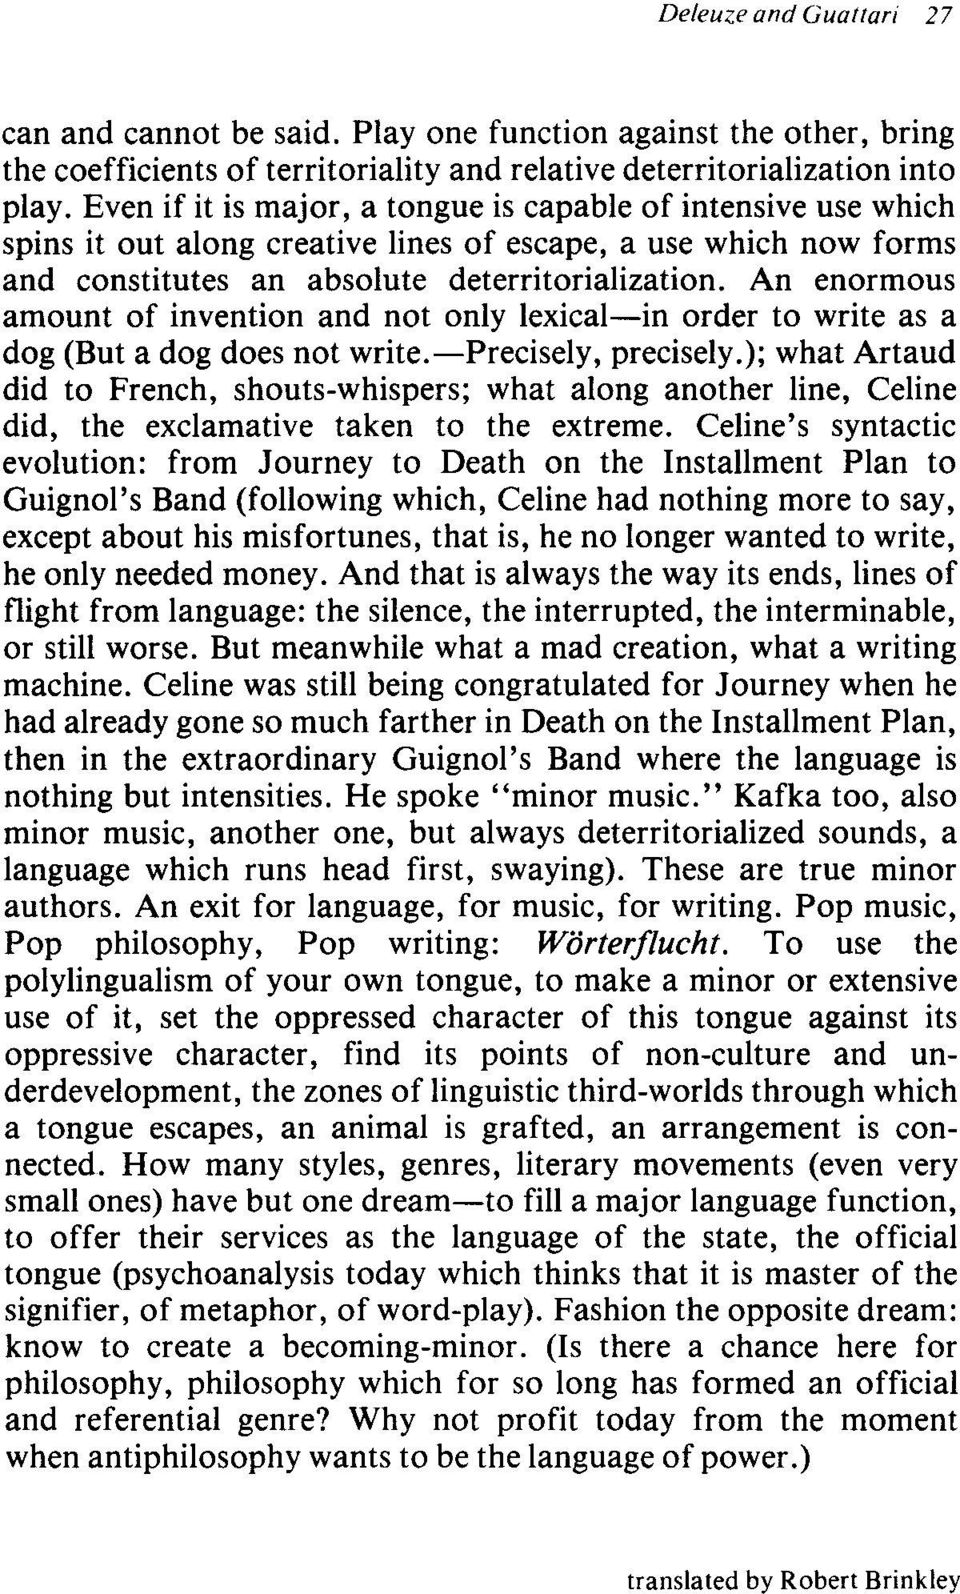 An enormous amount of invention and not only lexical-in order to write as a dog (But a dog does not write.-precisely, precisely.